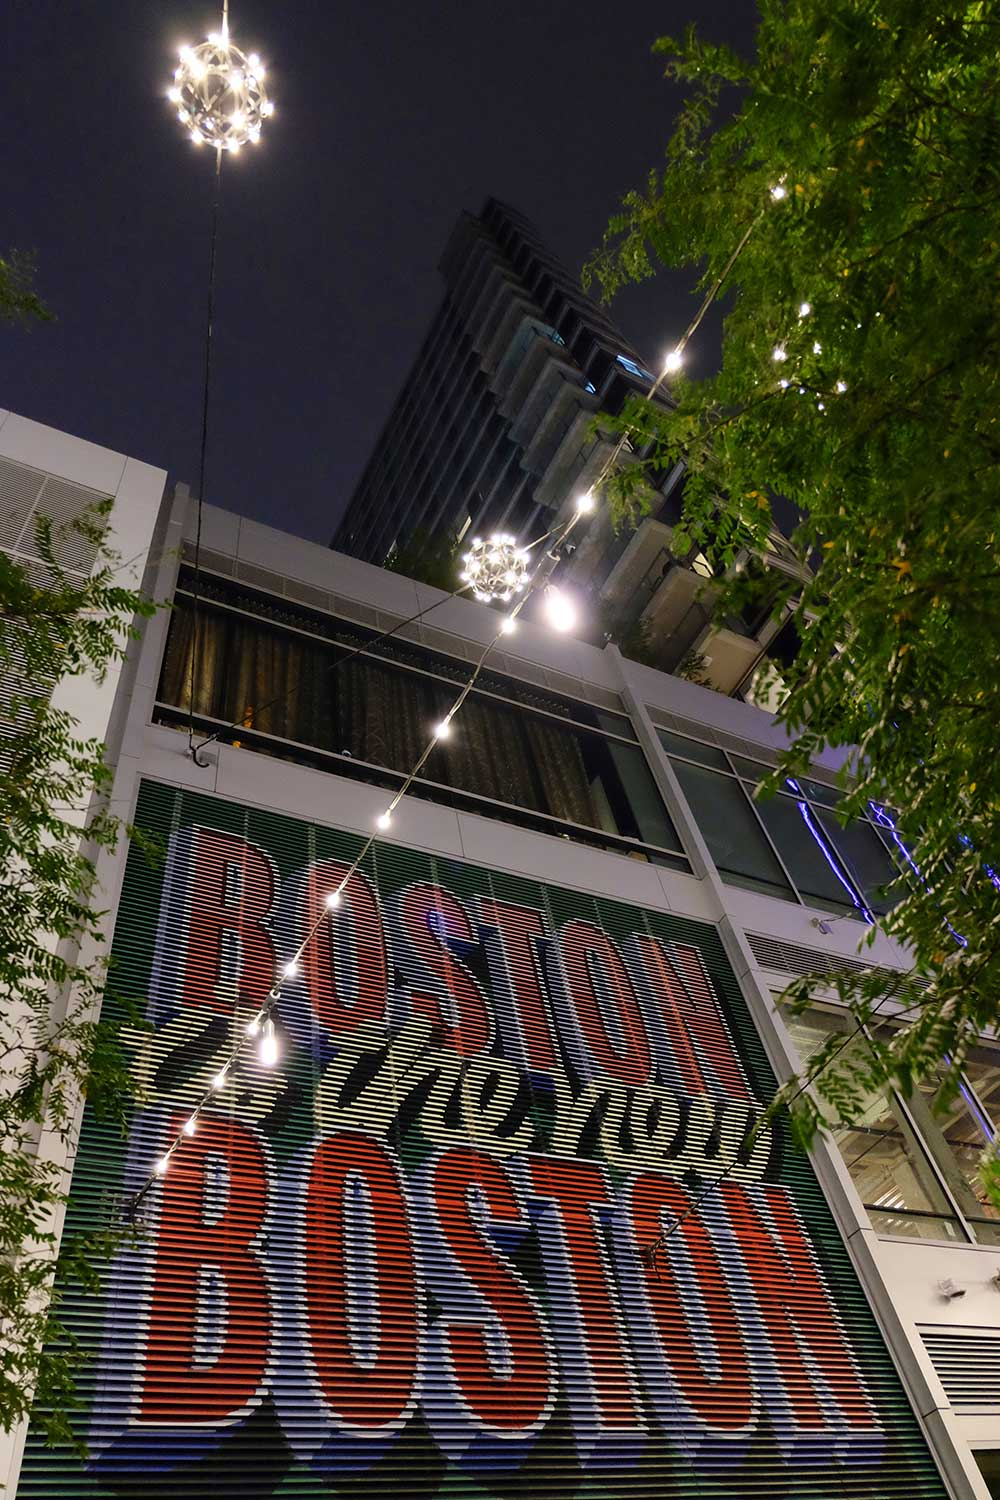 boston-led-light-specialist-rgb-lights.jpg